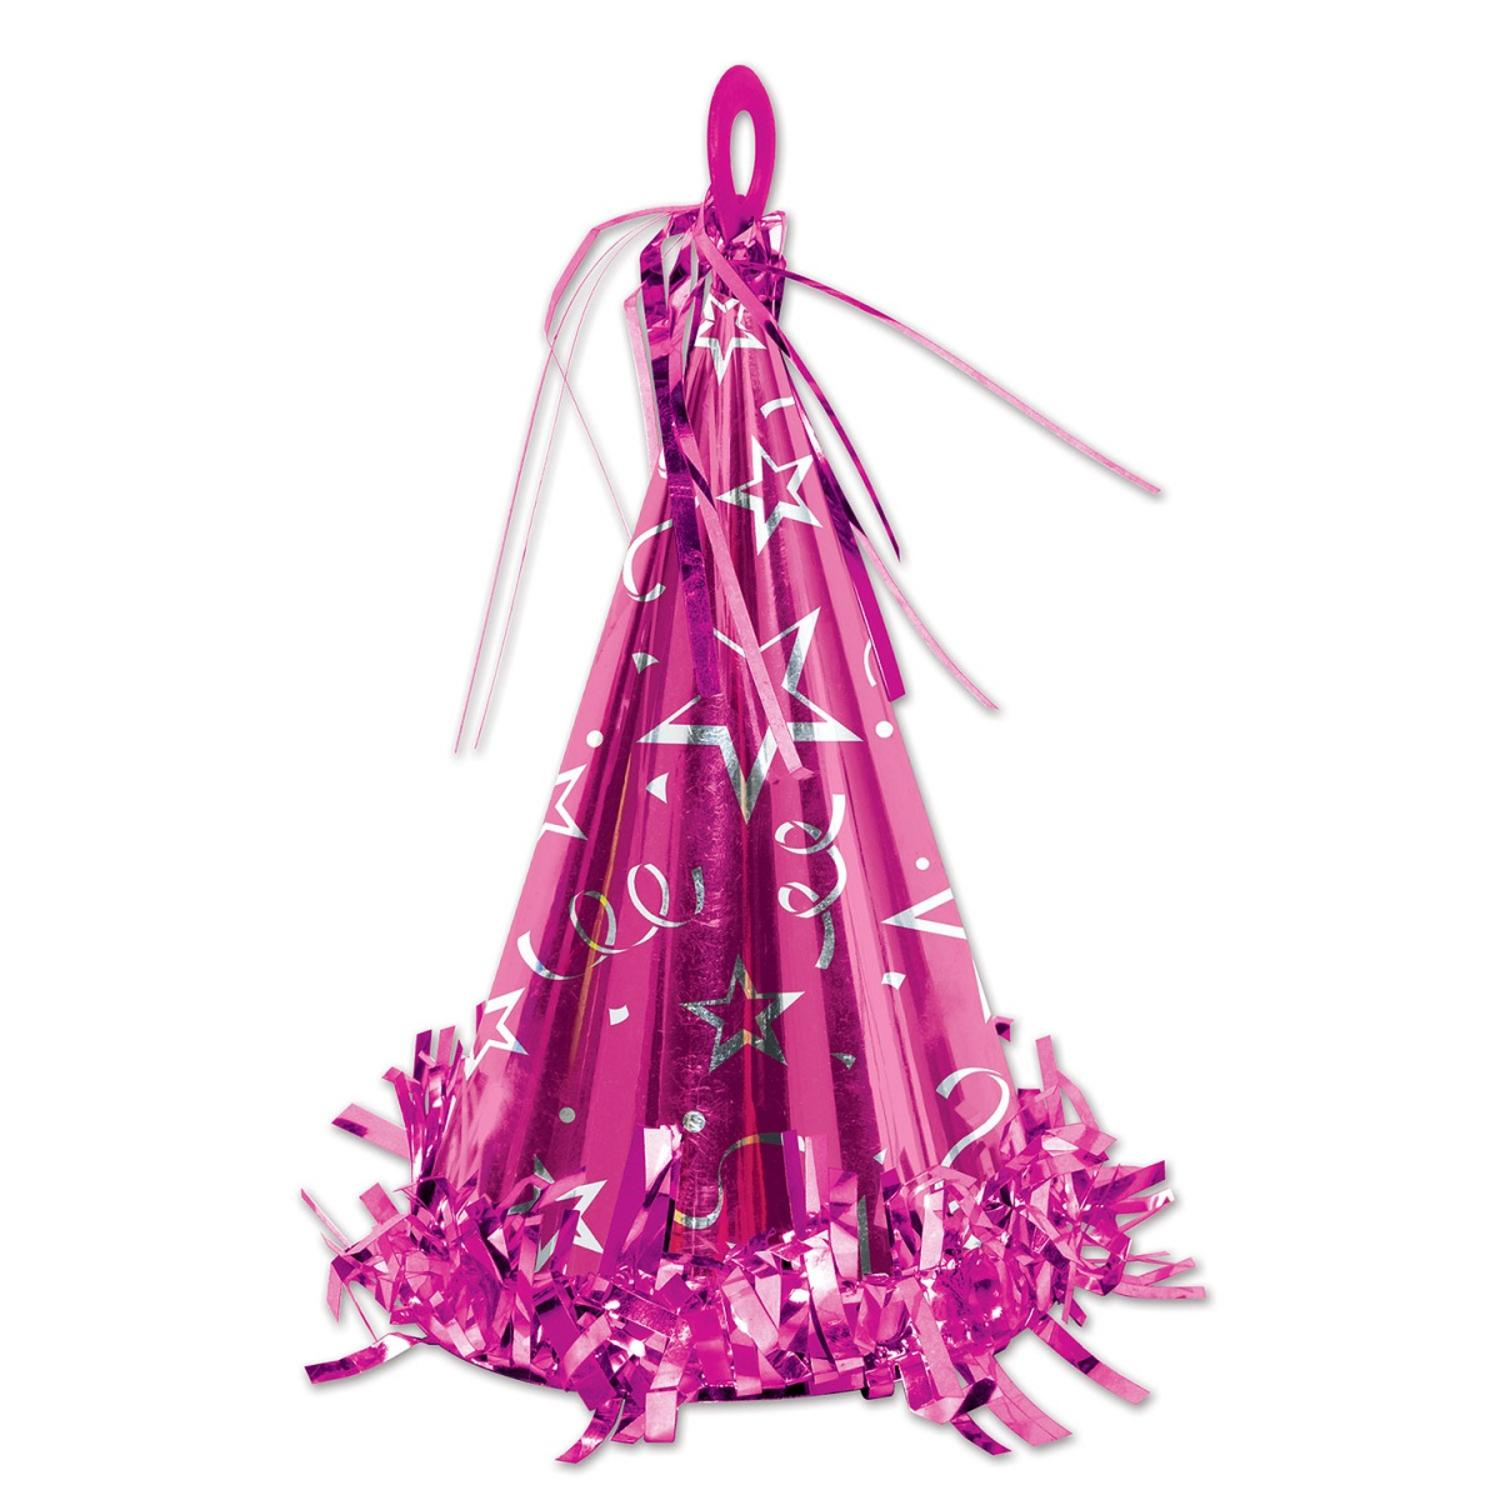 Club Pack of 12 Cerise Party Hat Balloon Weight Decorative Birthday Centerpieces 6 oz.